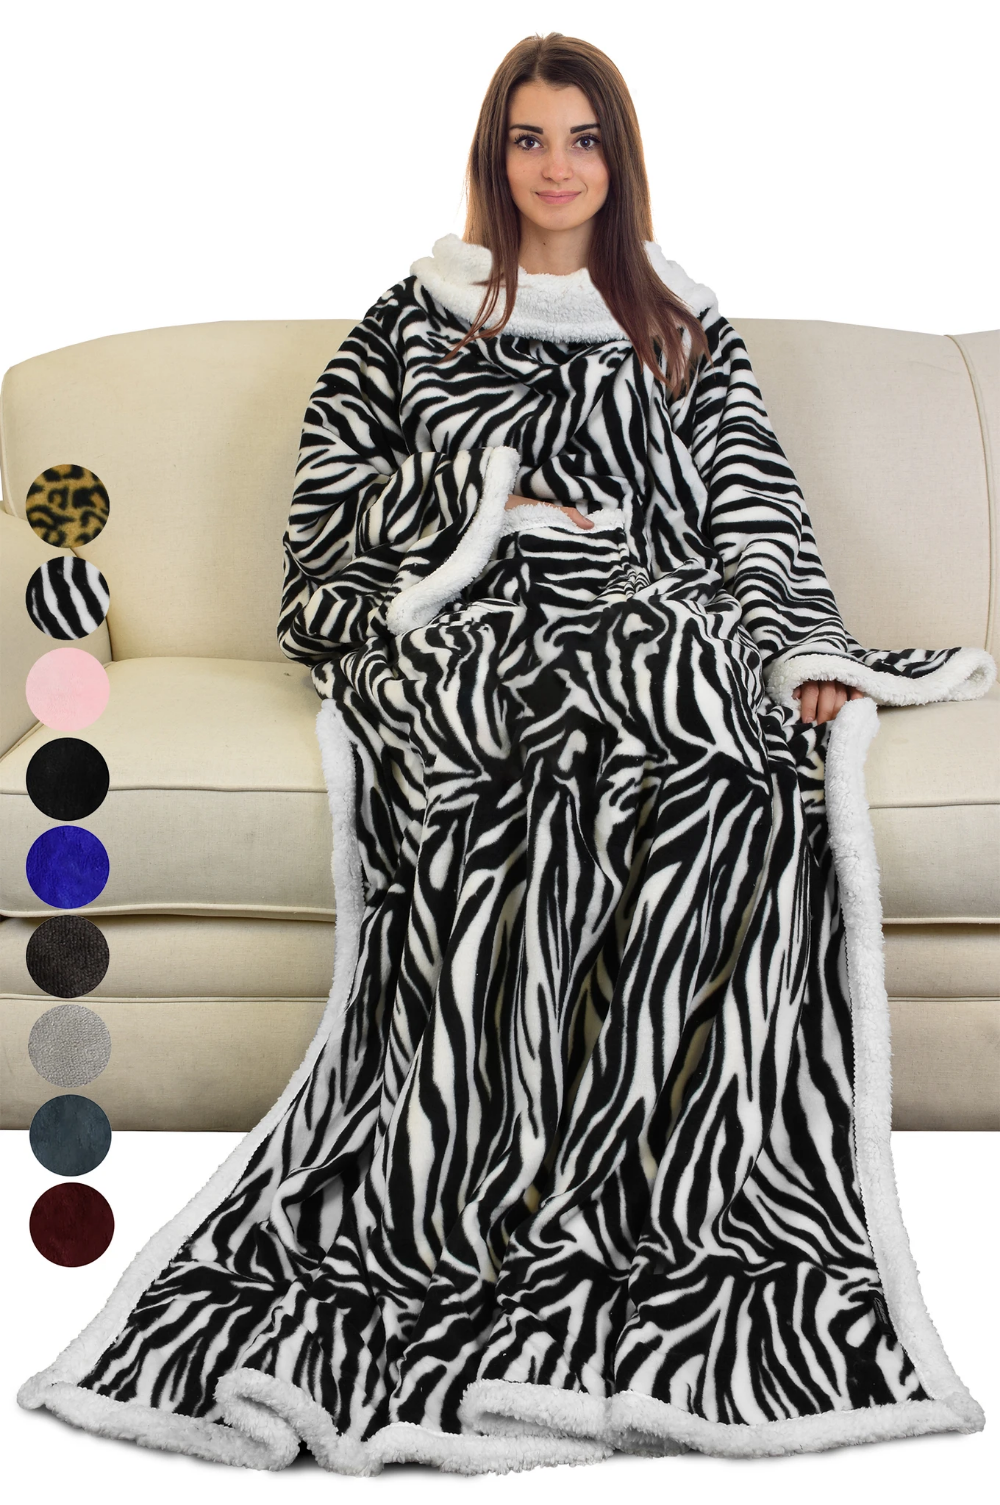 Plush Sherpa Fleece Wearable TV Blanket with Sleeves Arms